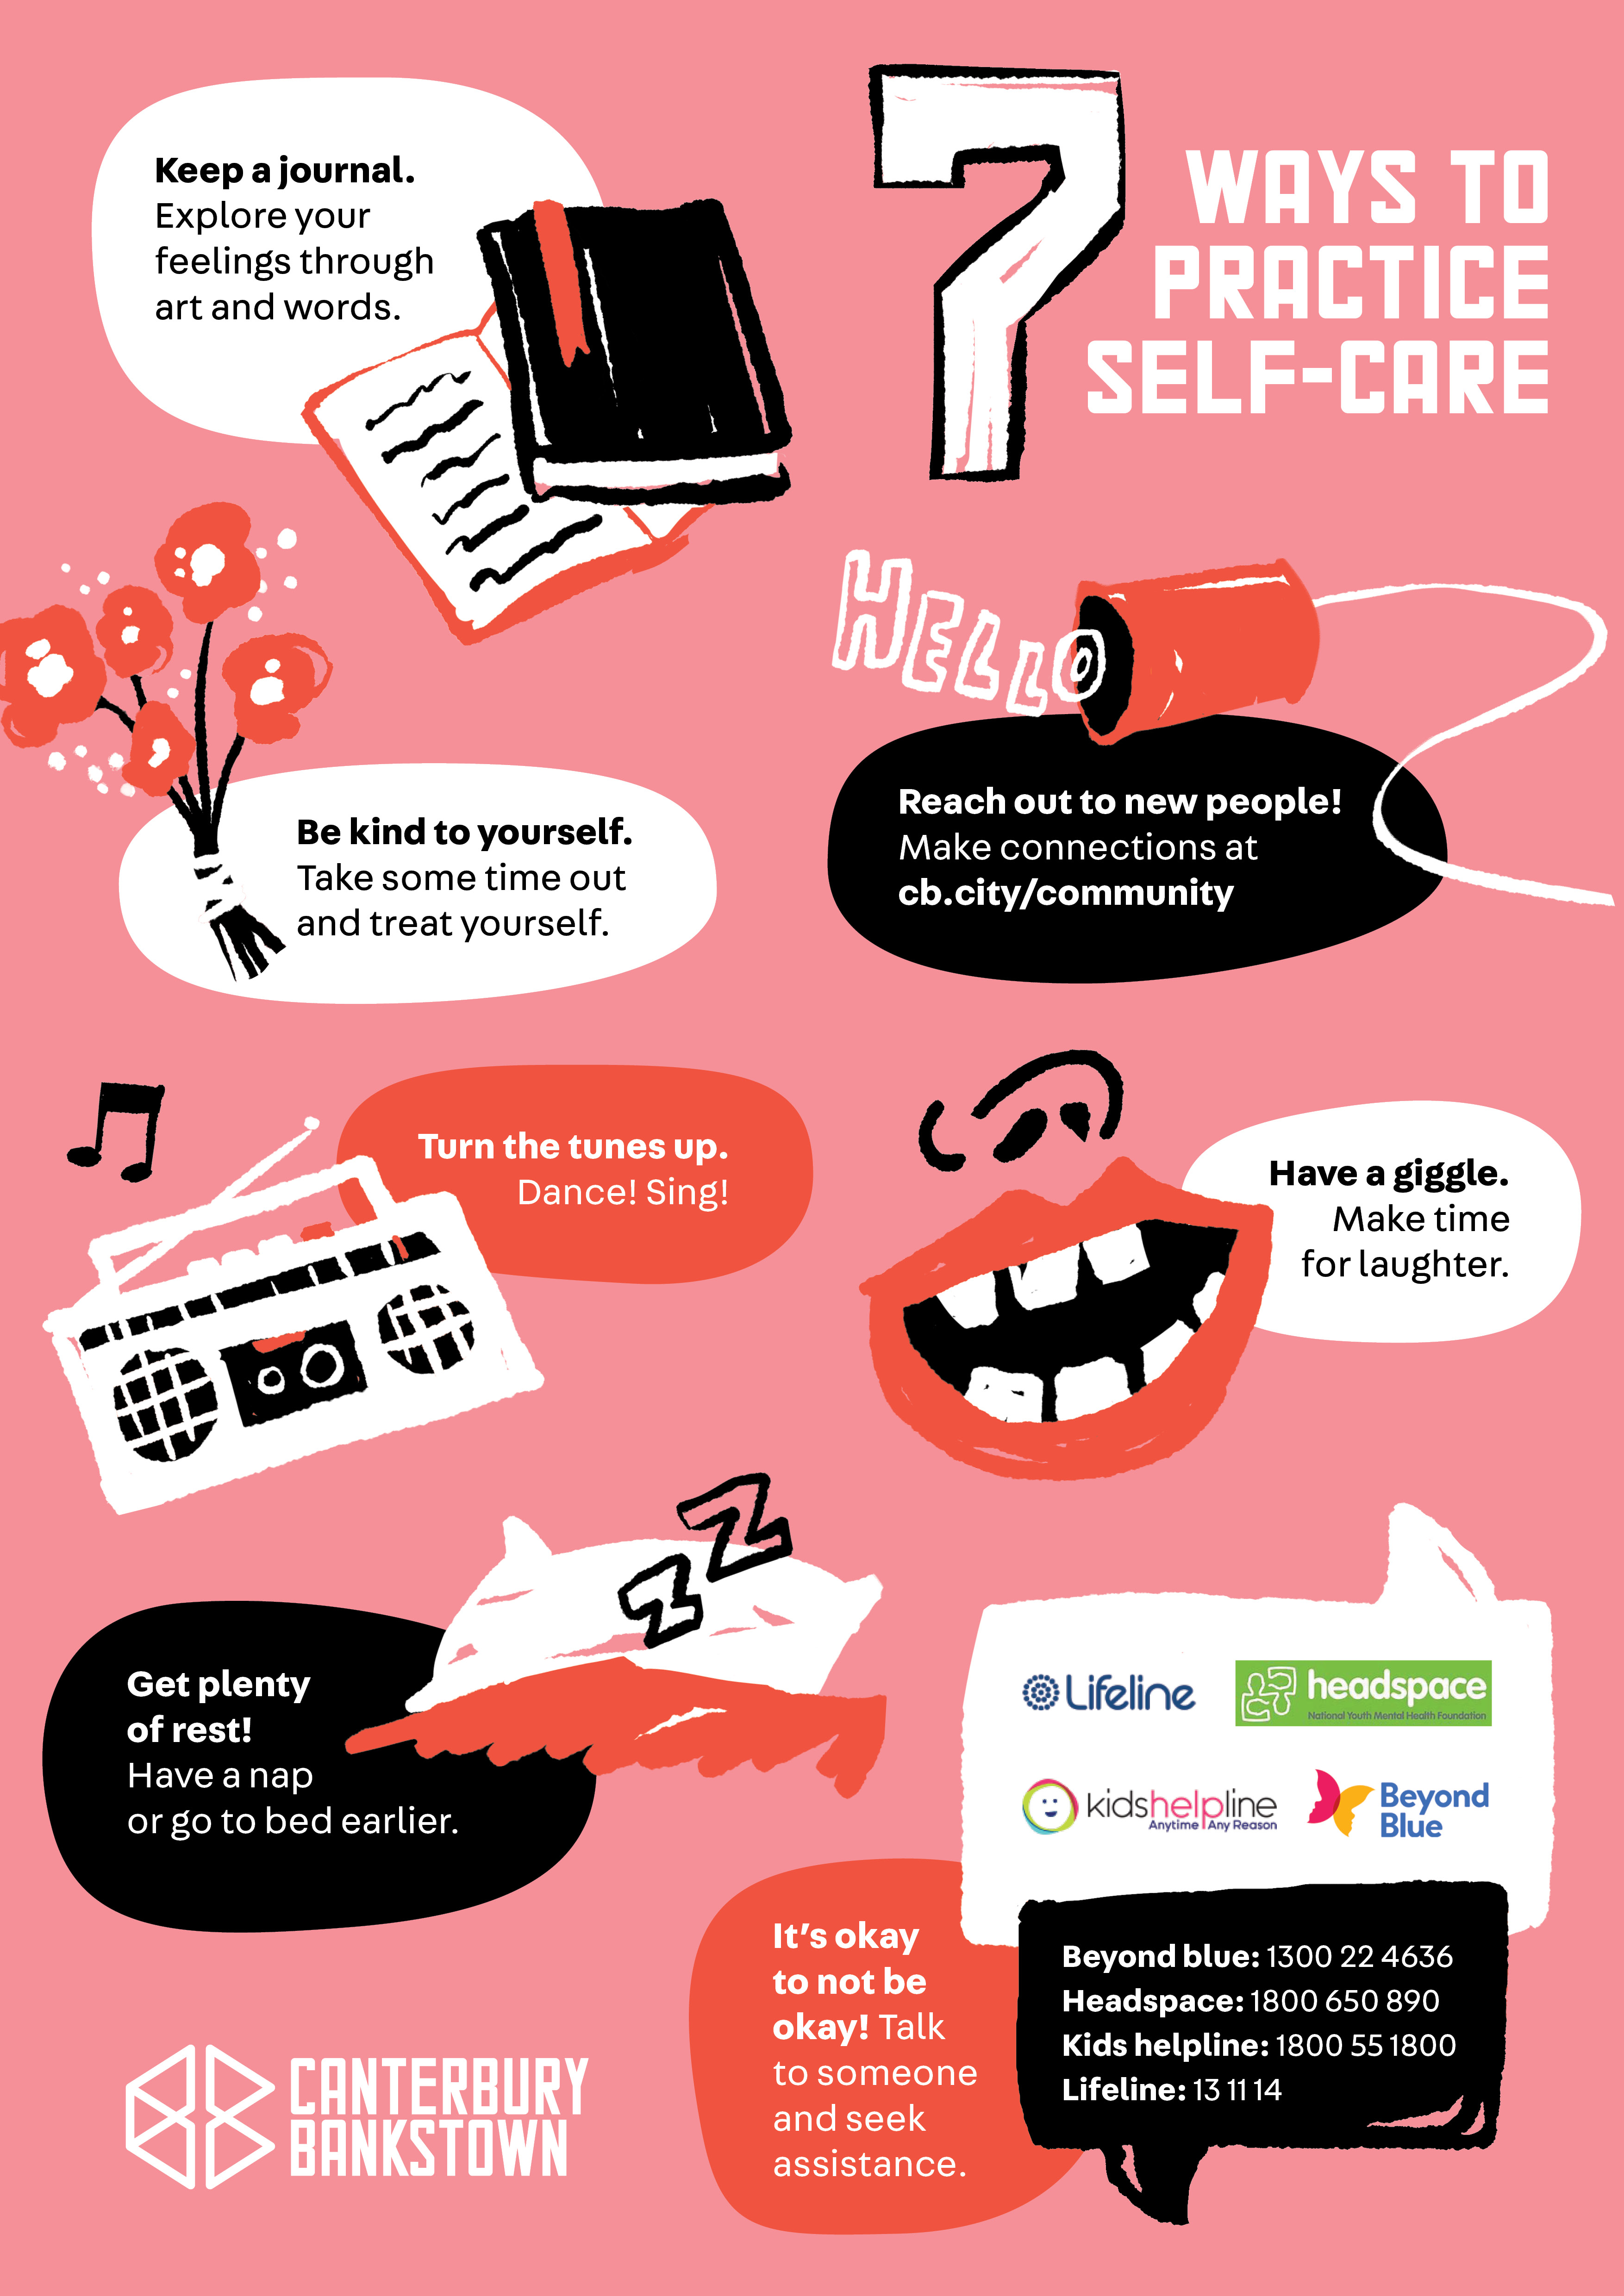 a guide to 7 ways to practice self-care